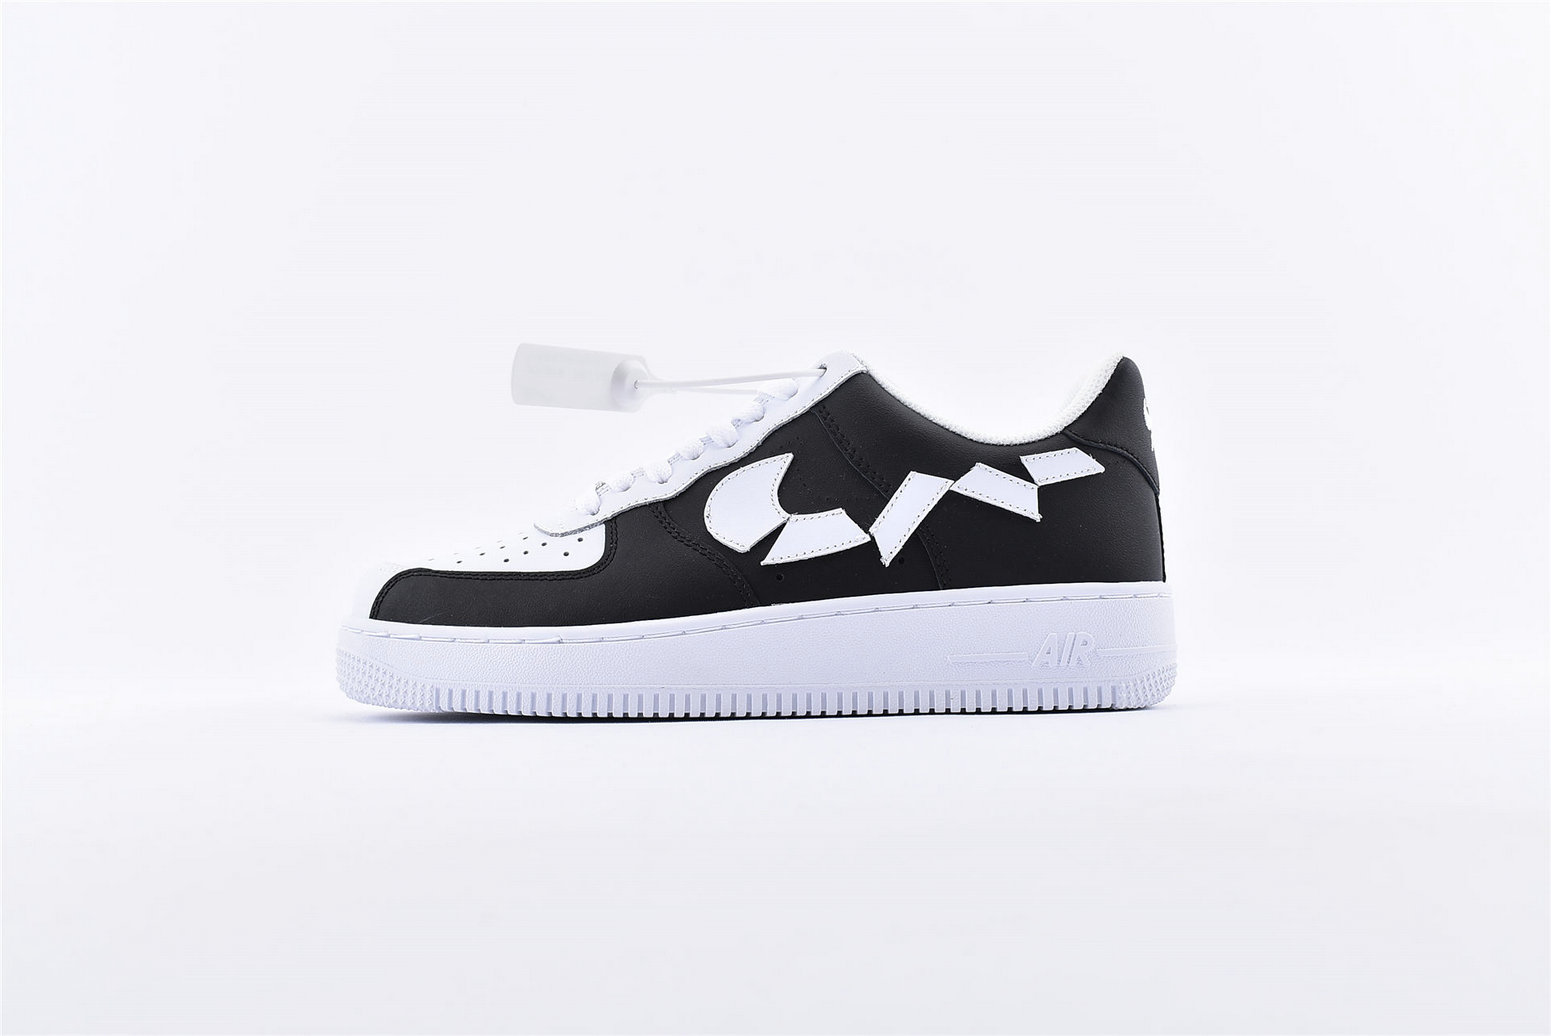 Where To Buy Wholesale Cheap Nike Air Force 1 07 White Black 315124-011 - www.wholesaleflyknit.com